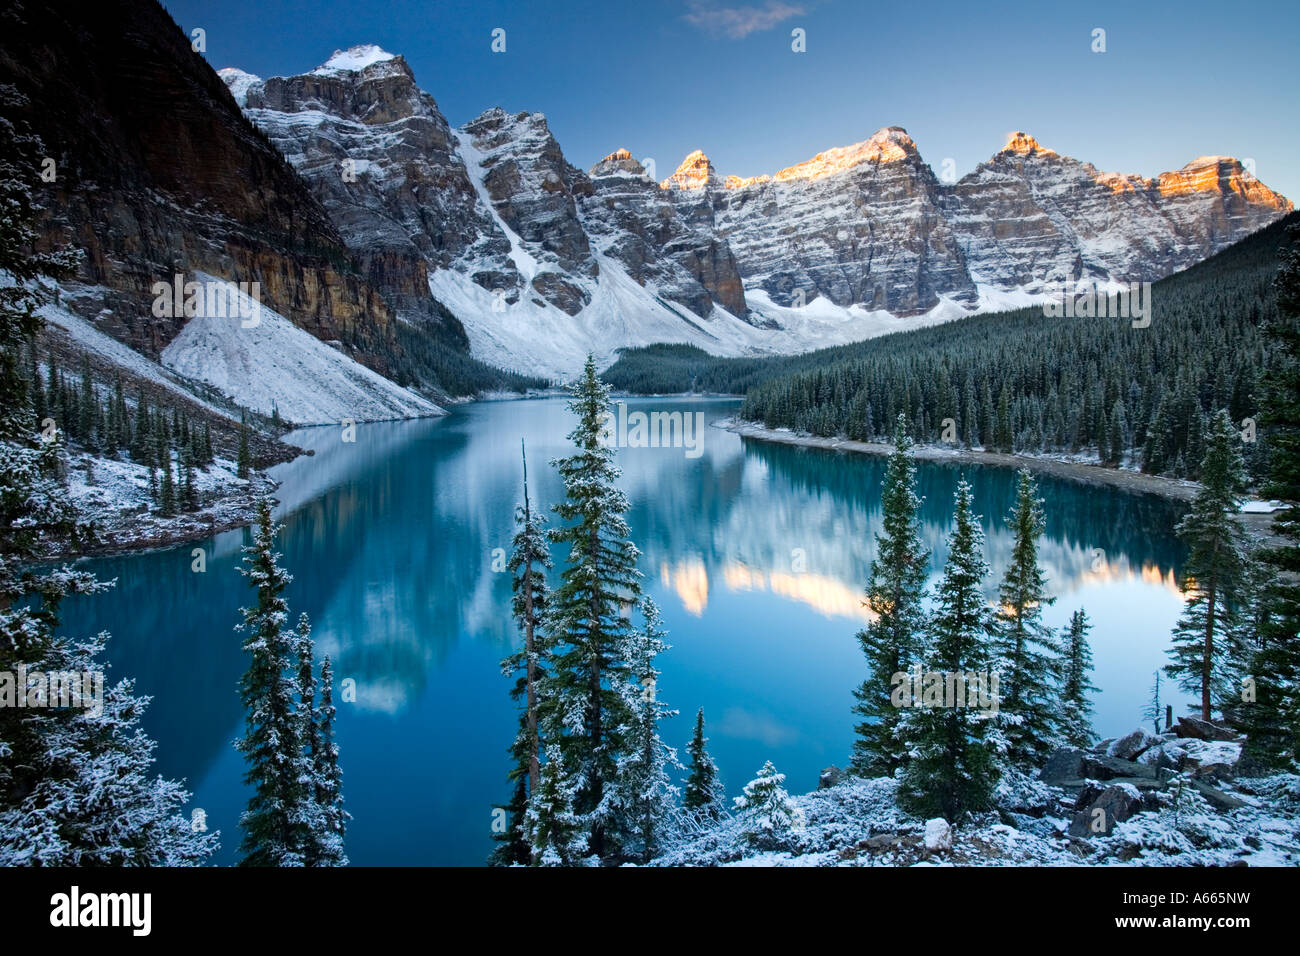 Winter snow at Moraine Lake, Banff National Park, Canadian Rockies - Stock Image